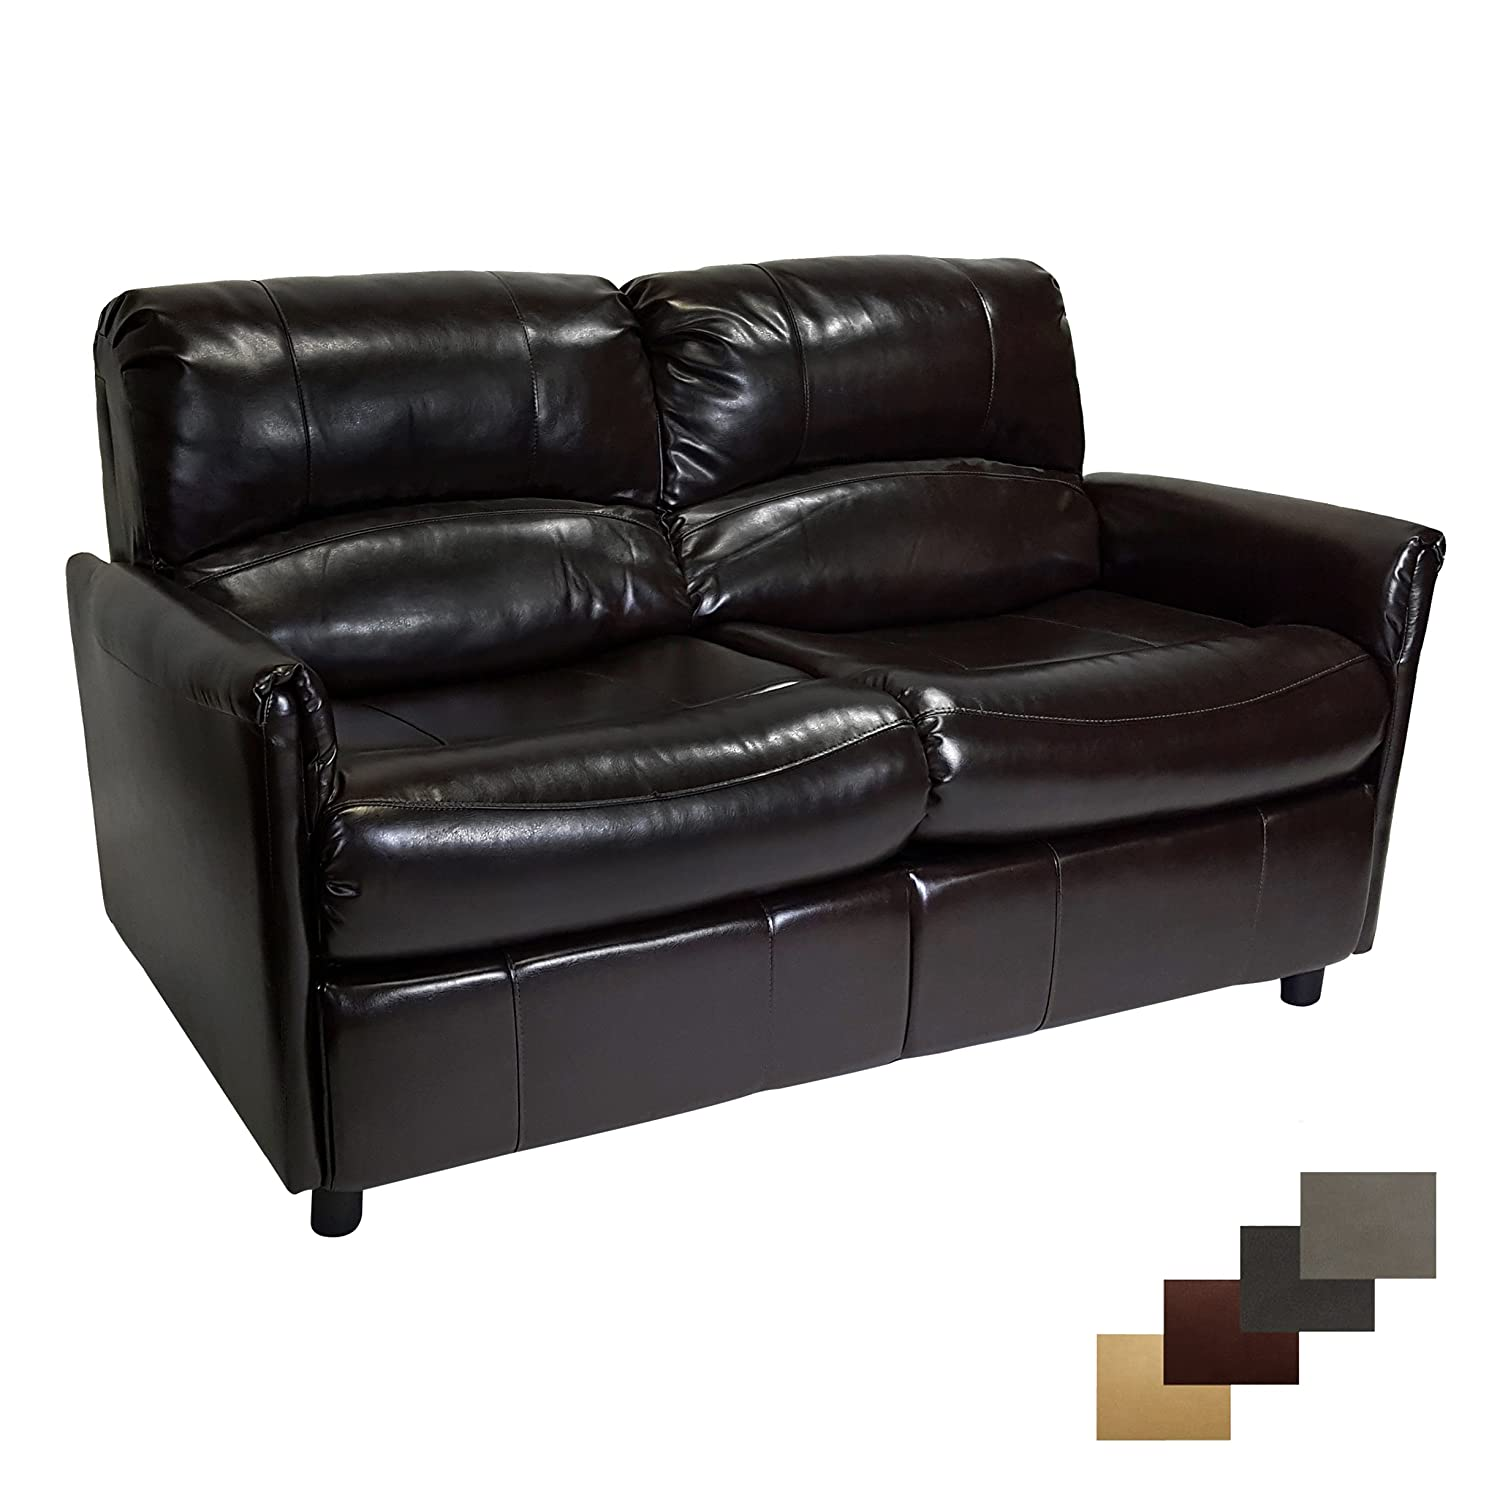 sets industries queen woodhaven sofa sleeper bed birmingham fold out loveseat